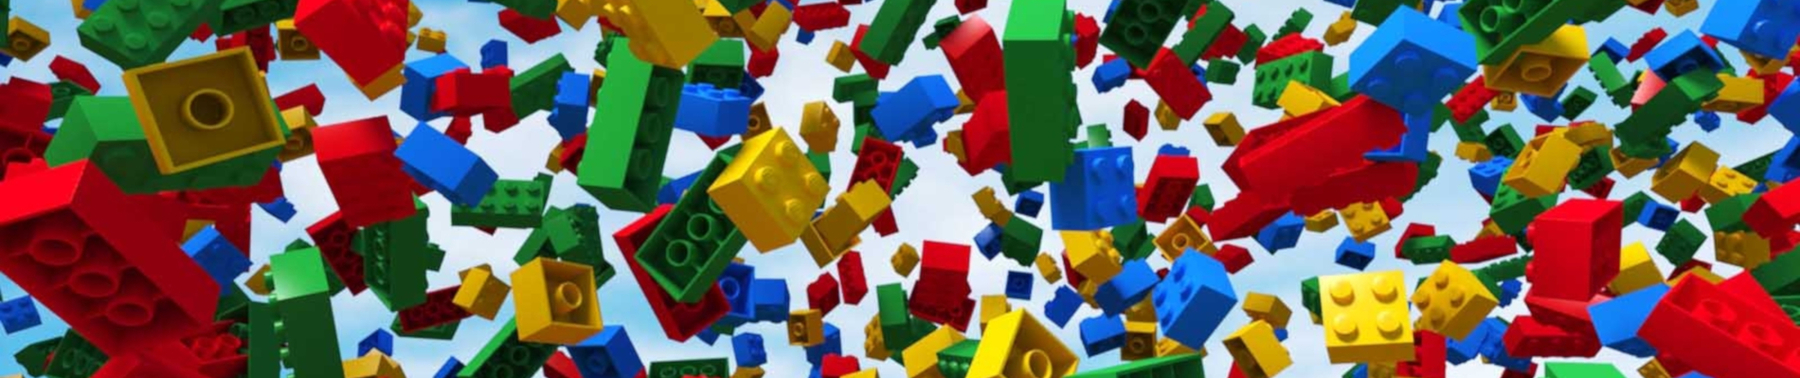 Images of Lego Bricks | Kaggle